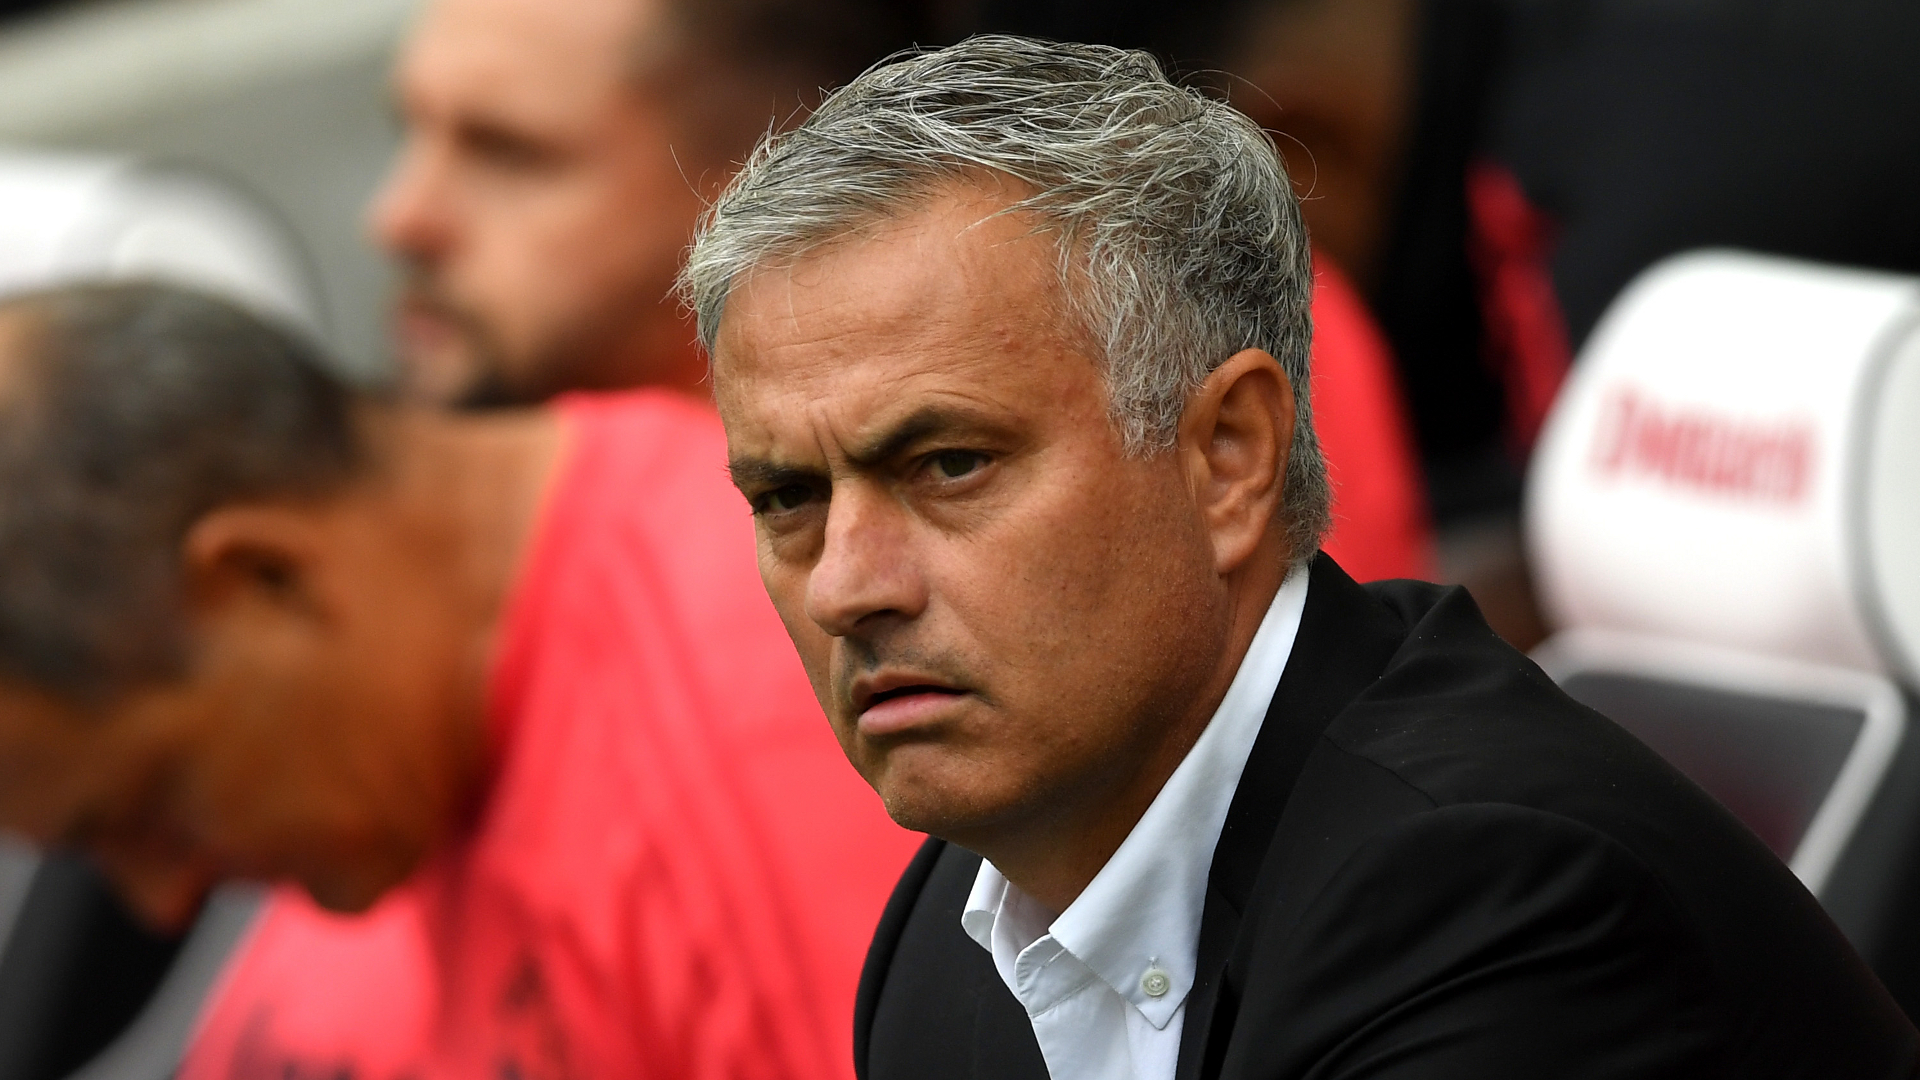 José Mourinho says he and Ed Woodward are getting on fine